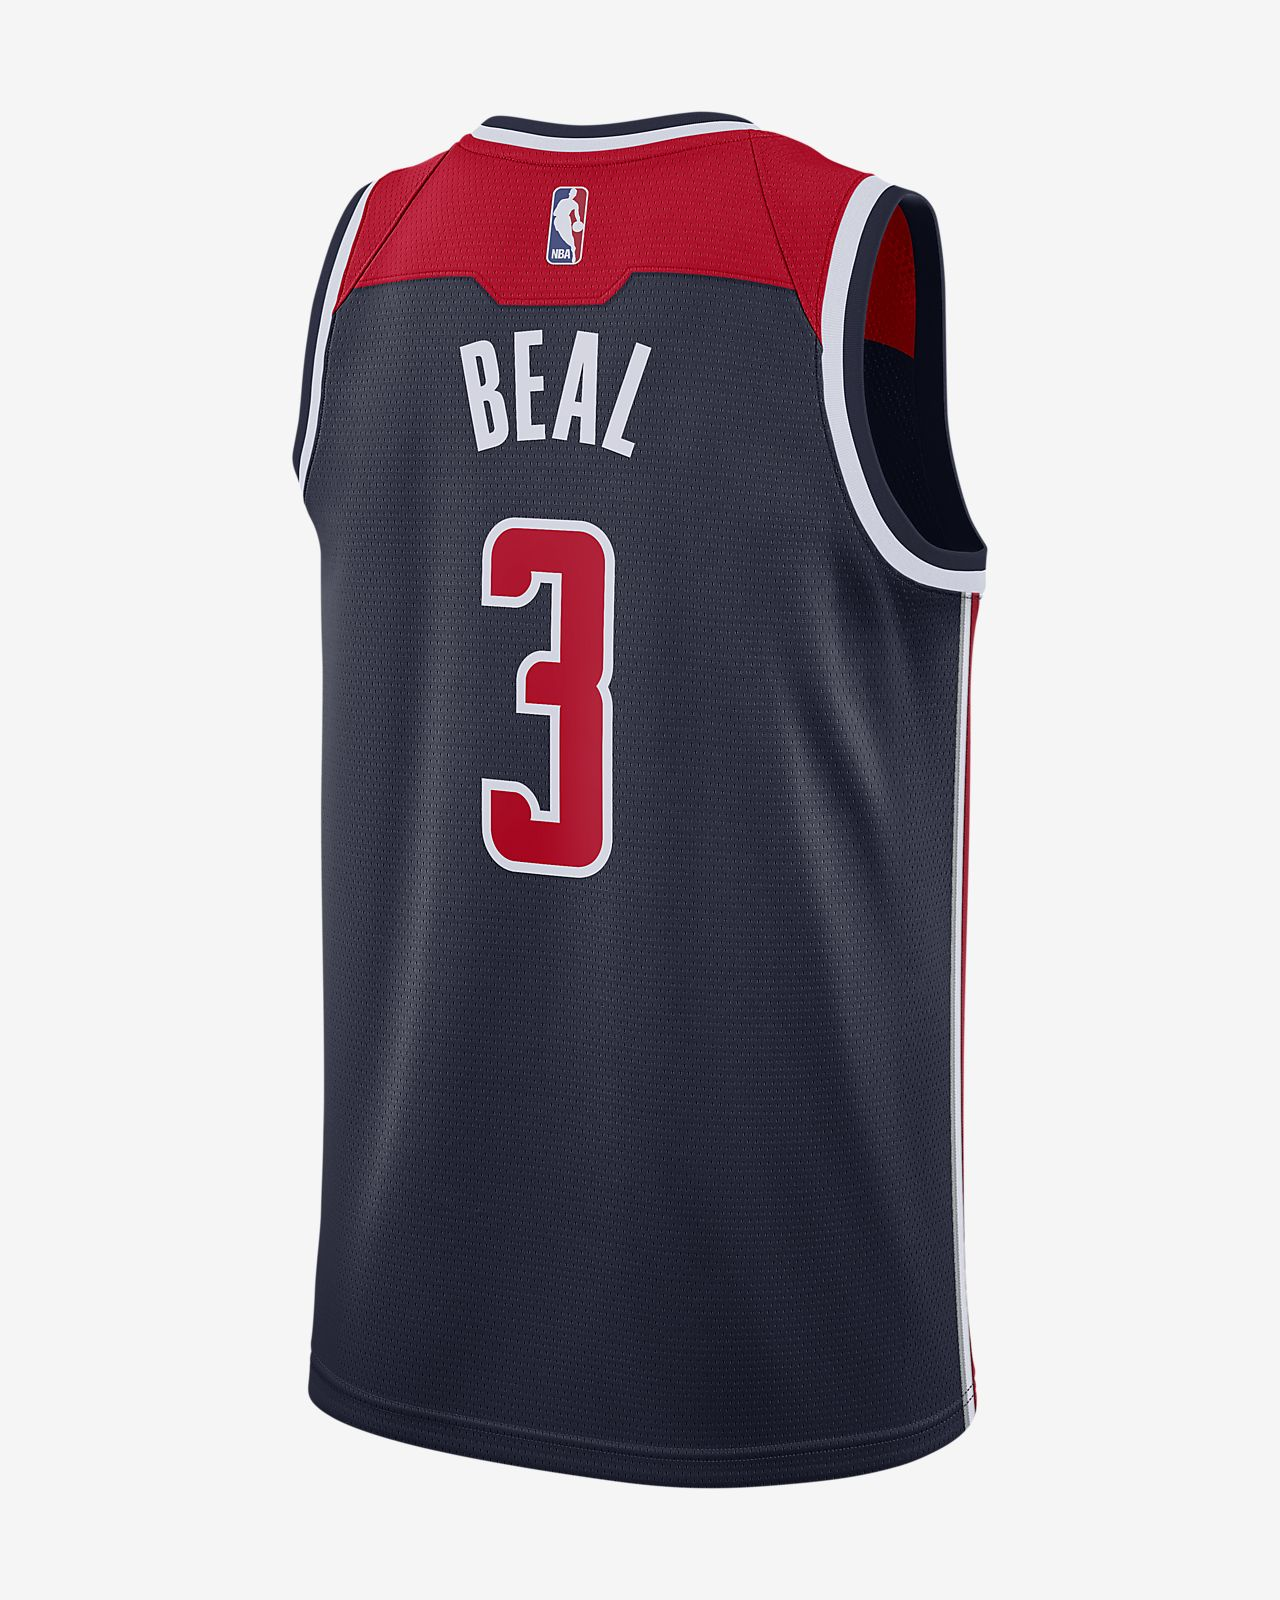 42f1e78581b ... Bradley Beal Statement Edition Swingman Jersey (Washington Wizards) Men s  Nike NBA Connected Jersey